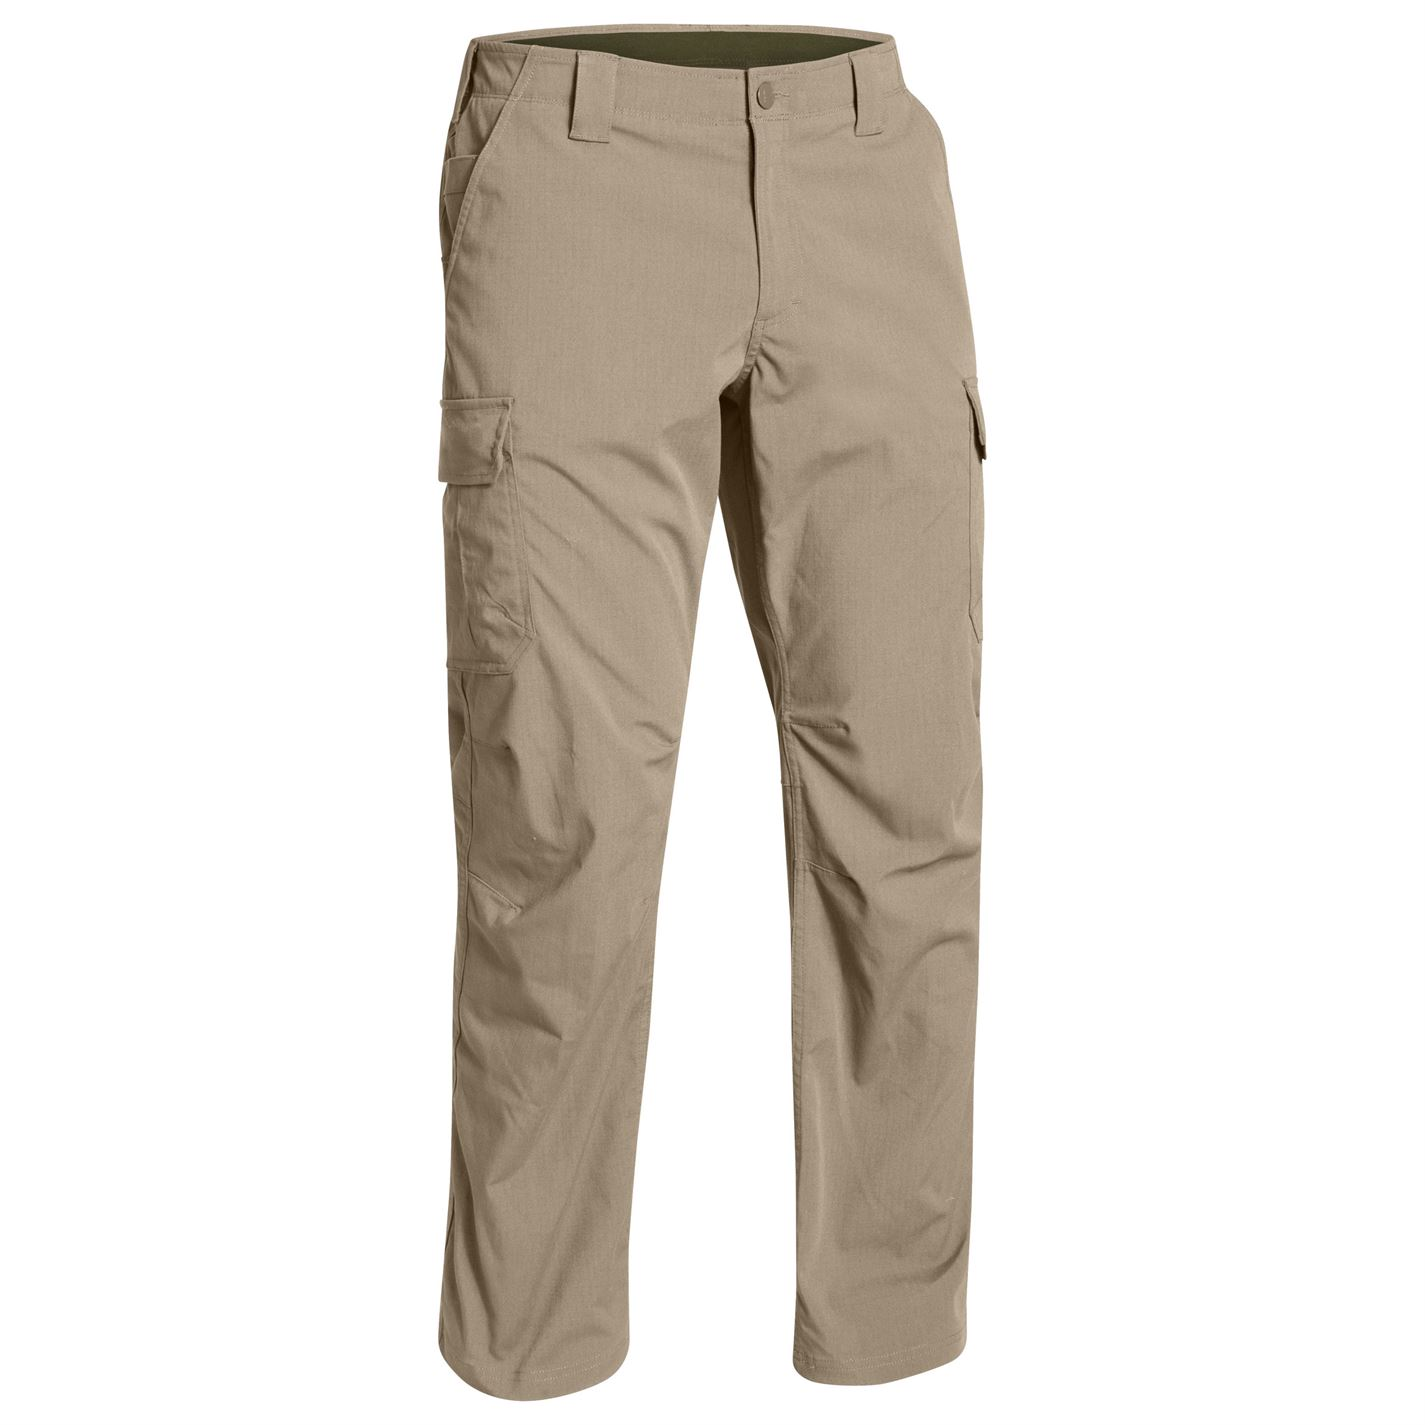 Nohavice Under Armour Storm Tactical Patrol Cargo Pants Mens - Glami.sk 16be8242102